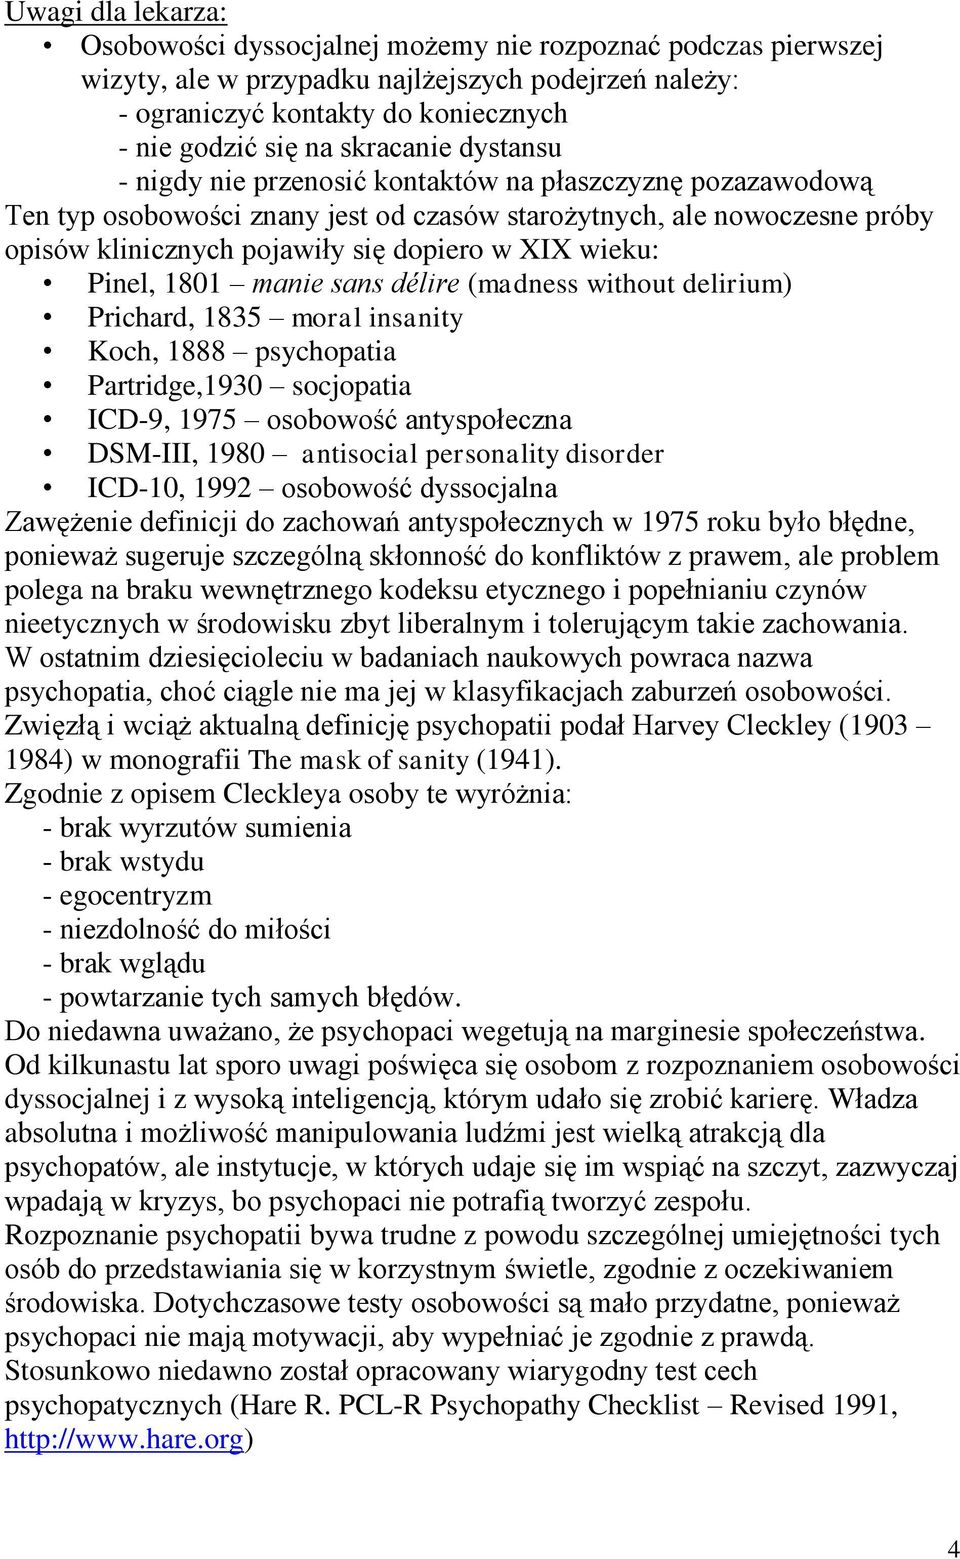 wieku: Pinel, 1801 manie sans délire (madness without delirium) Prichard, 1835 moral insanity Koch, 1888 psychopatia Partridge,1930 socjopatia ICD-9, 1975 osobowość antyspołeczna DSM-III, 1980